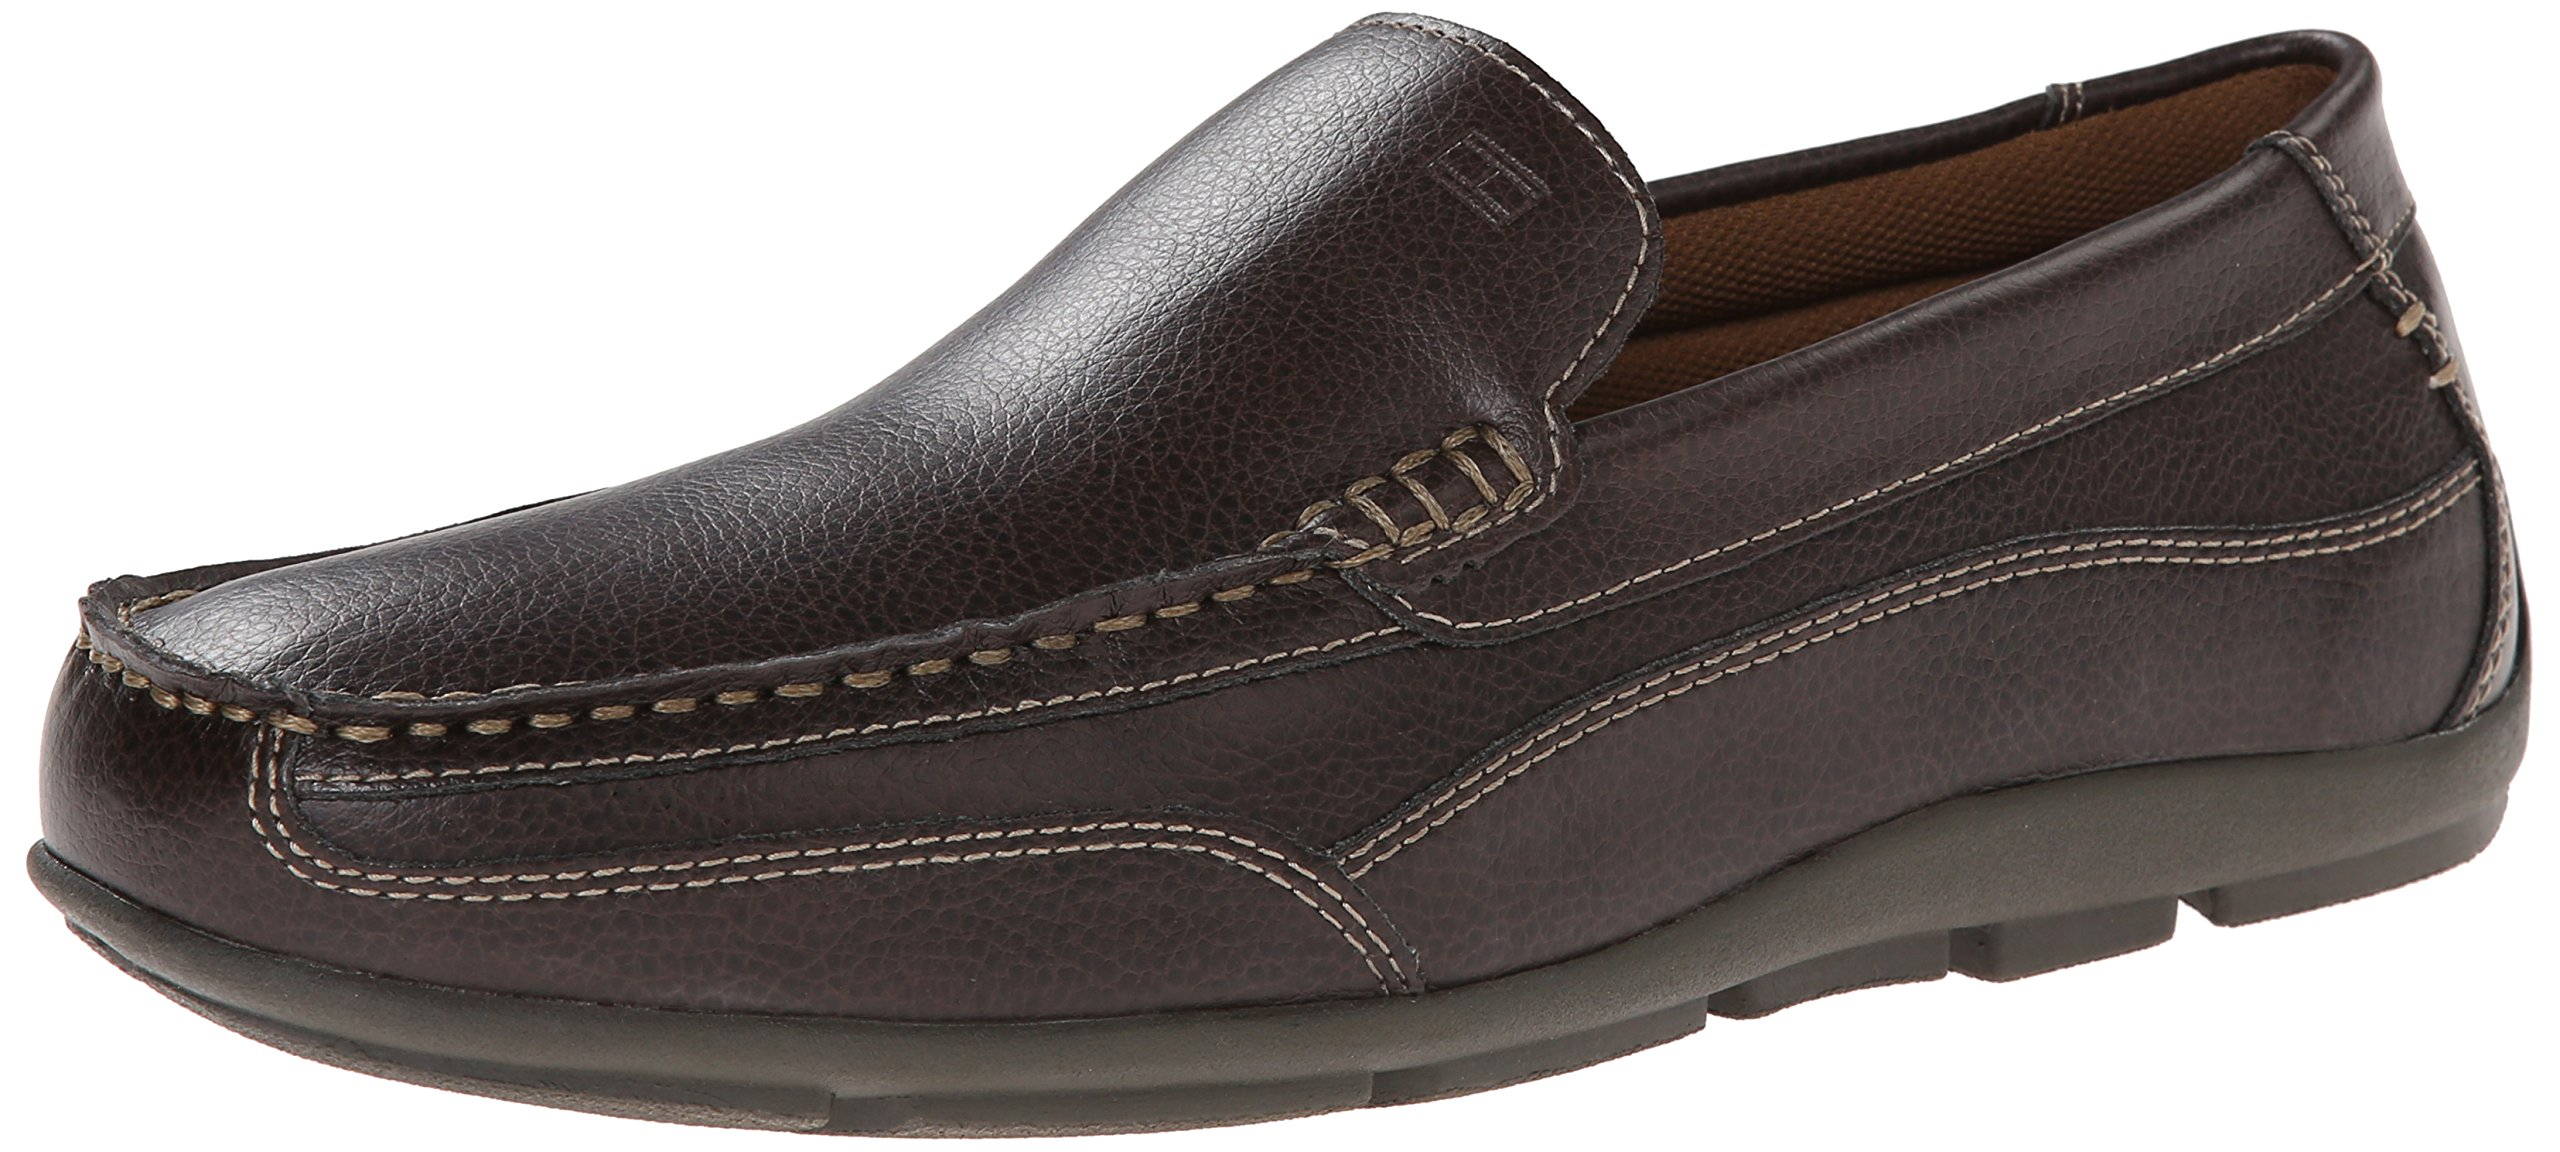 Tommy Hilfiger Men's Dathan Boat Shoe, Brown, 10.5 M US by Tommy Hilfiger